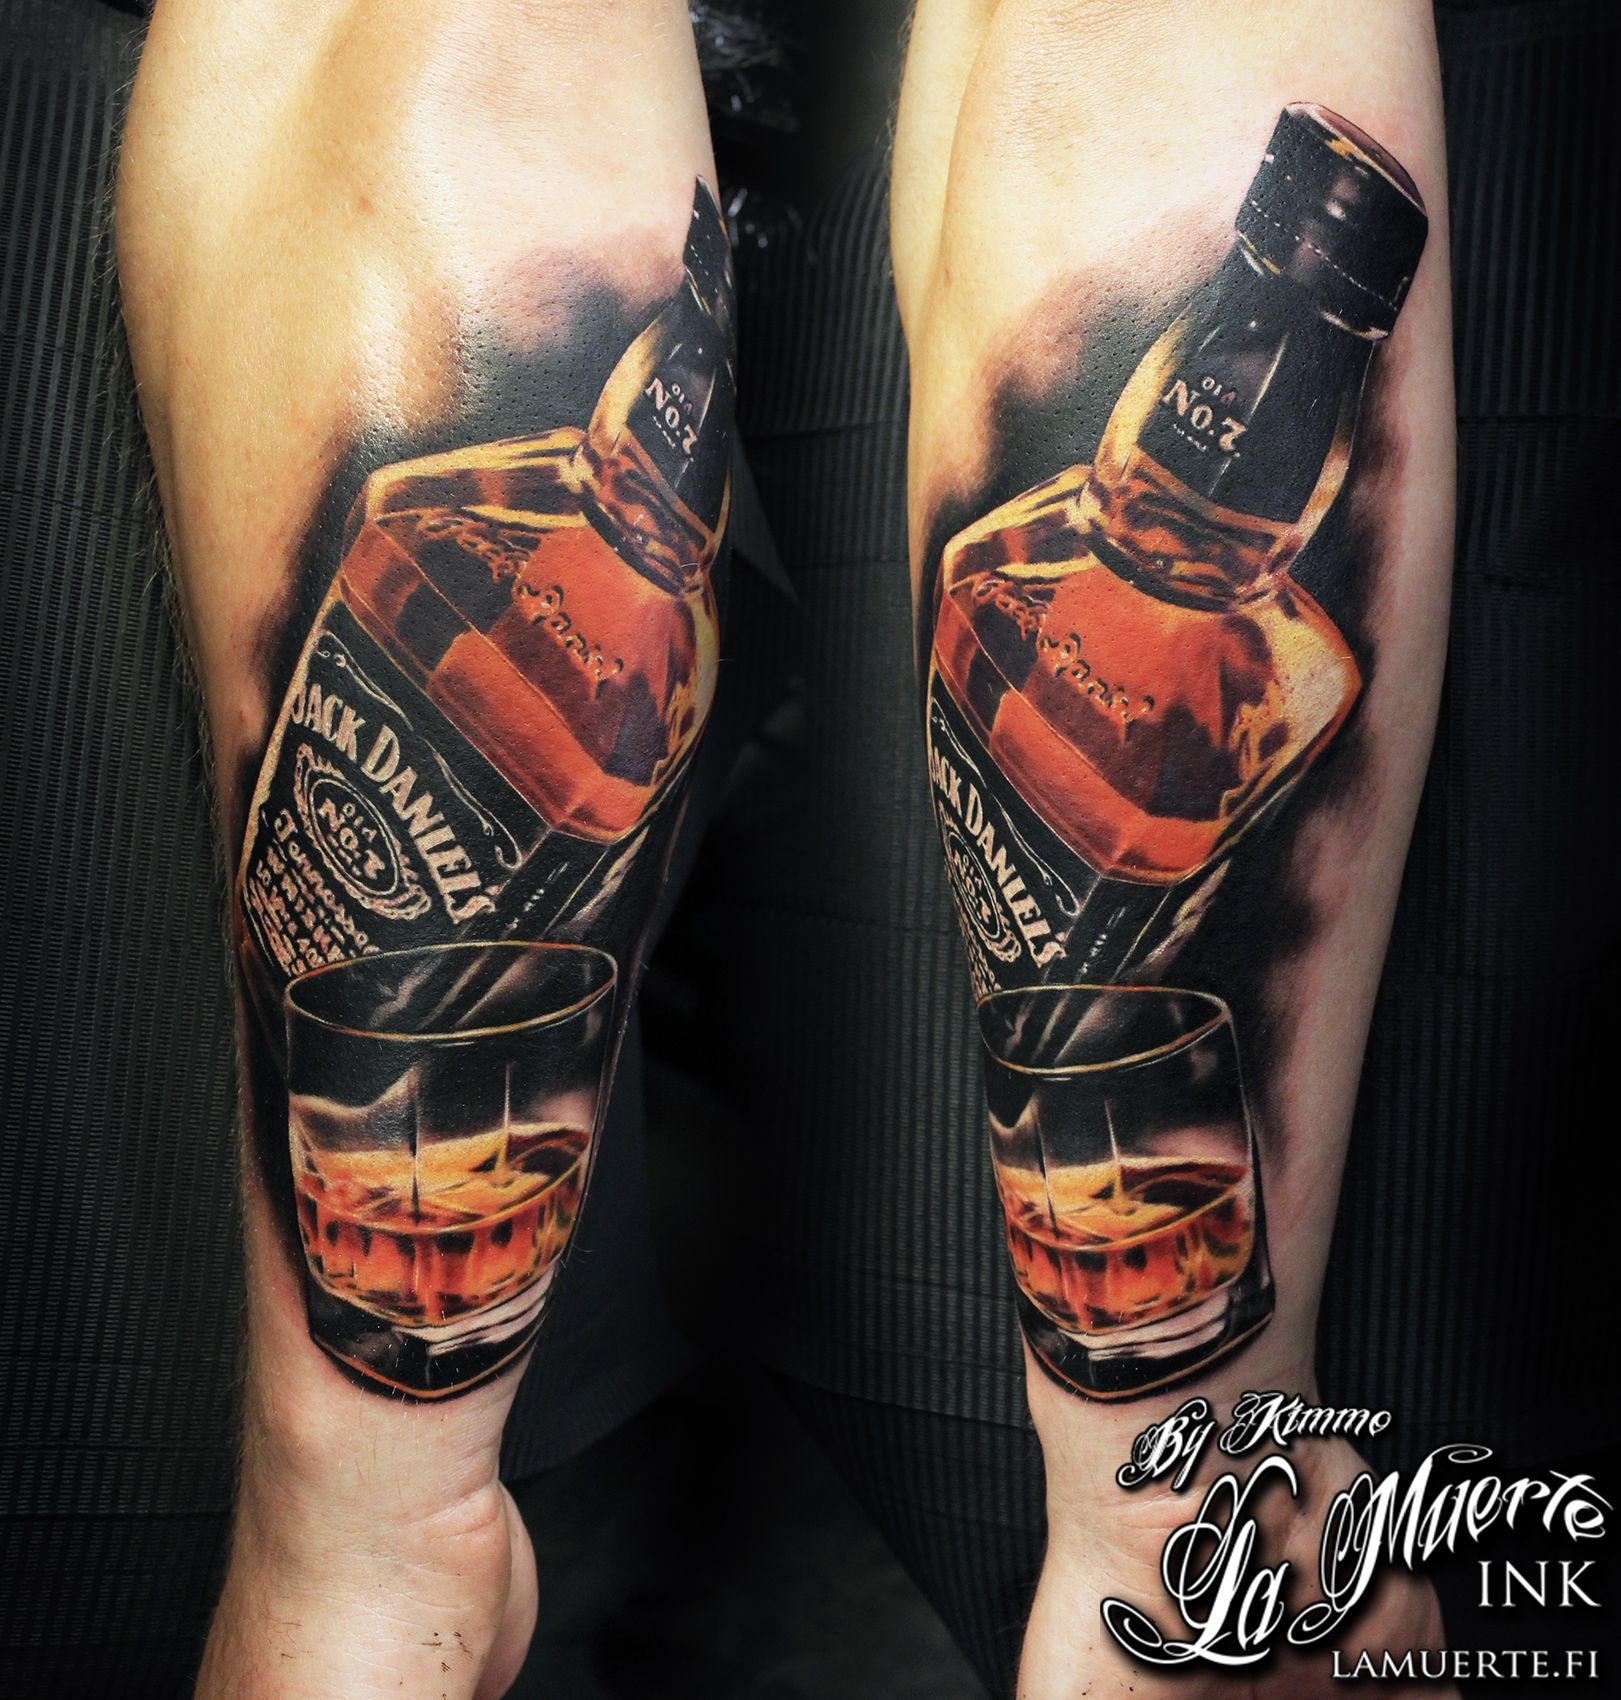 jack daniels tattoo by kimmo angervaniva la muerte ink tattoos by kimmo angervaniva. Black Bedroom Furniture Sets. Home Design Ideas